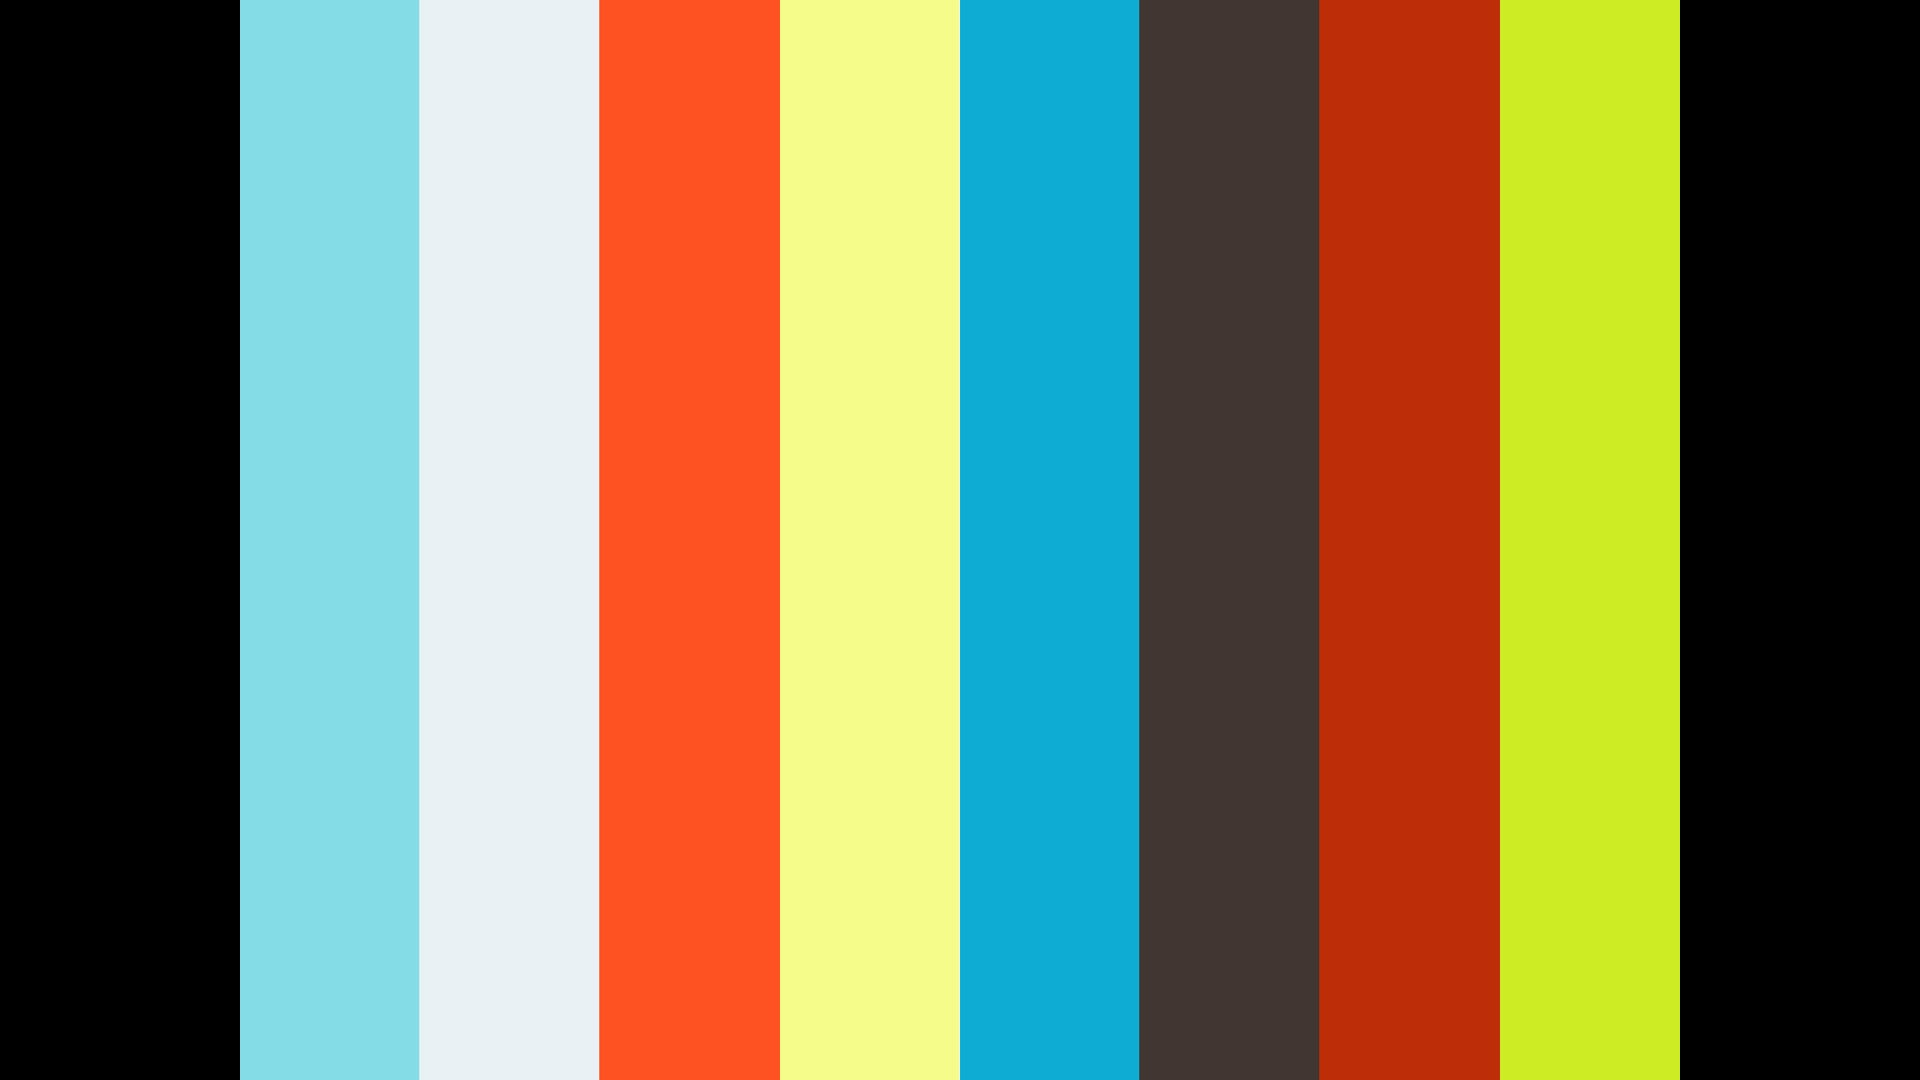 Bethany Brownholtz - Lover's Lane, June 28, 2019